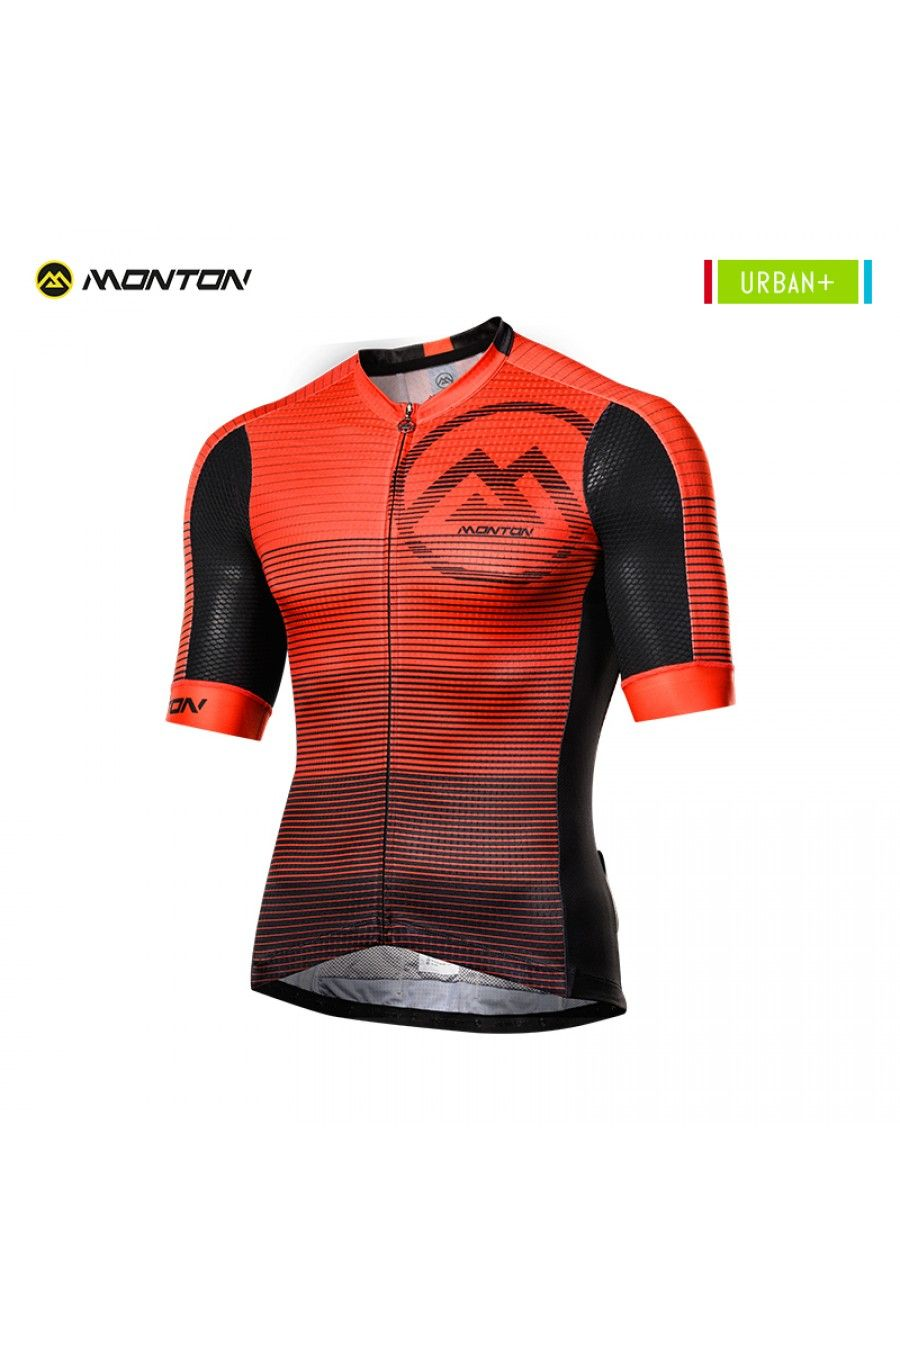 Buy Cycling Jersey With Images Cycling Outfit Biking Outfit